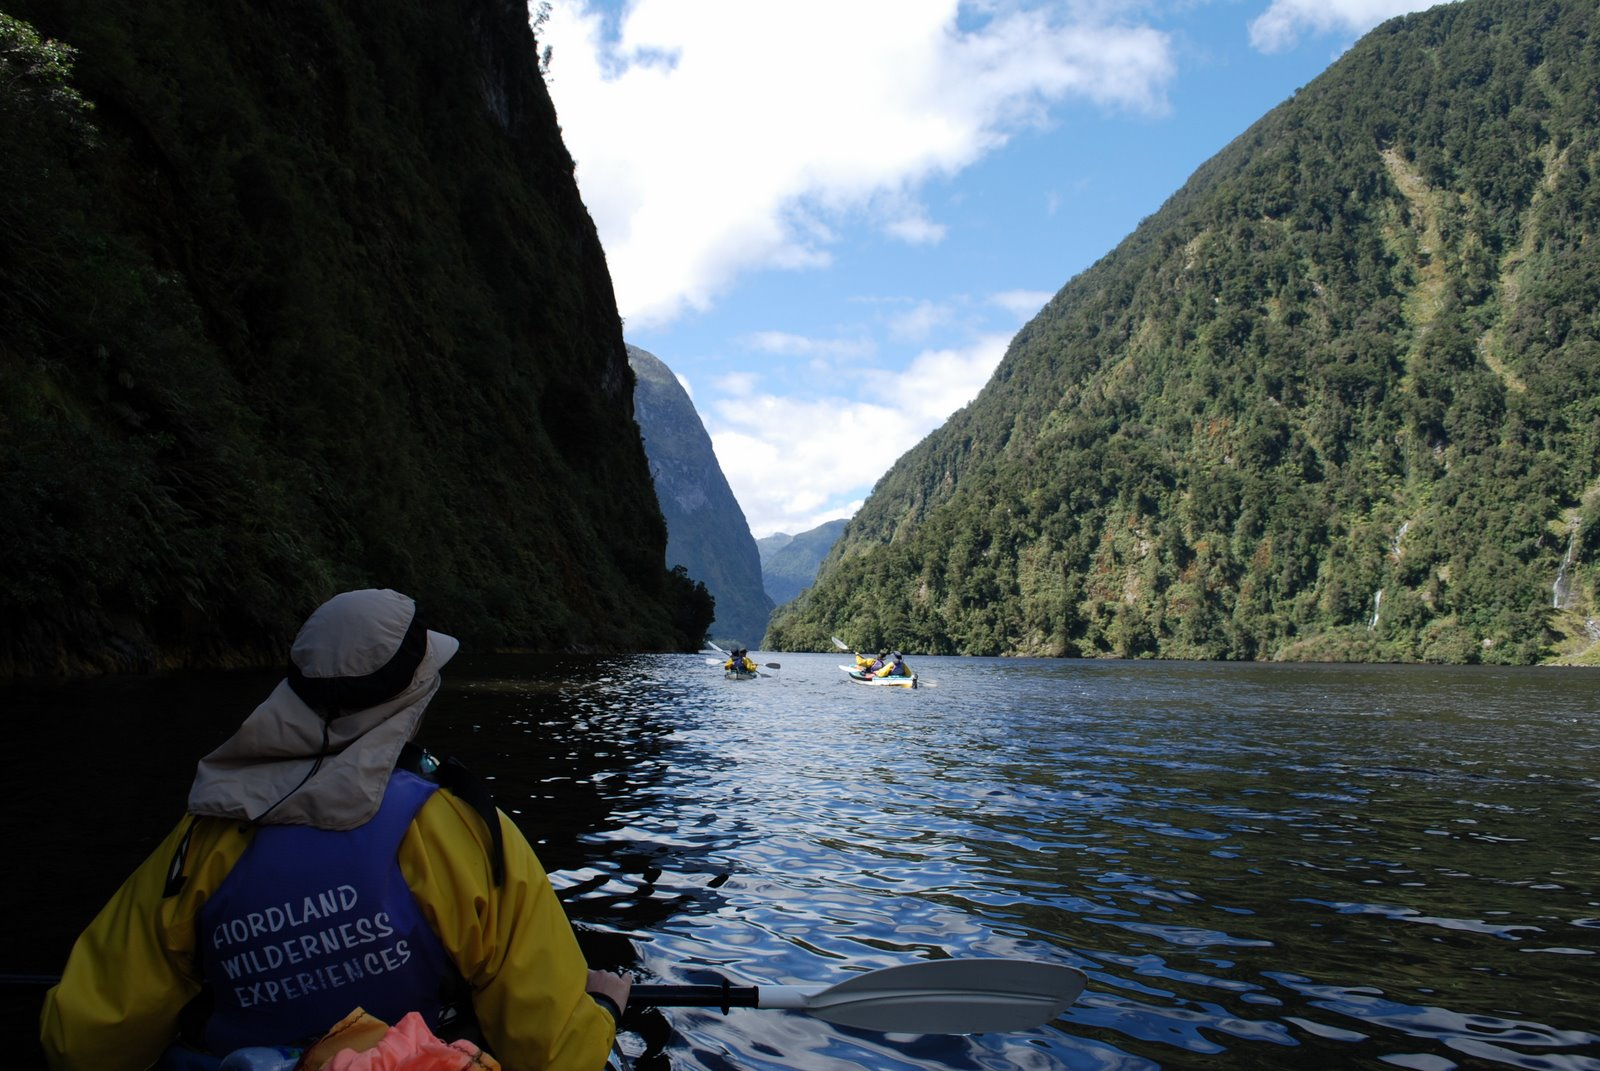 Kayaking in New Zealand's Doubtful Sound